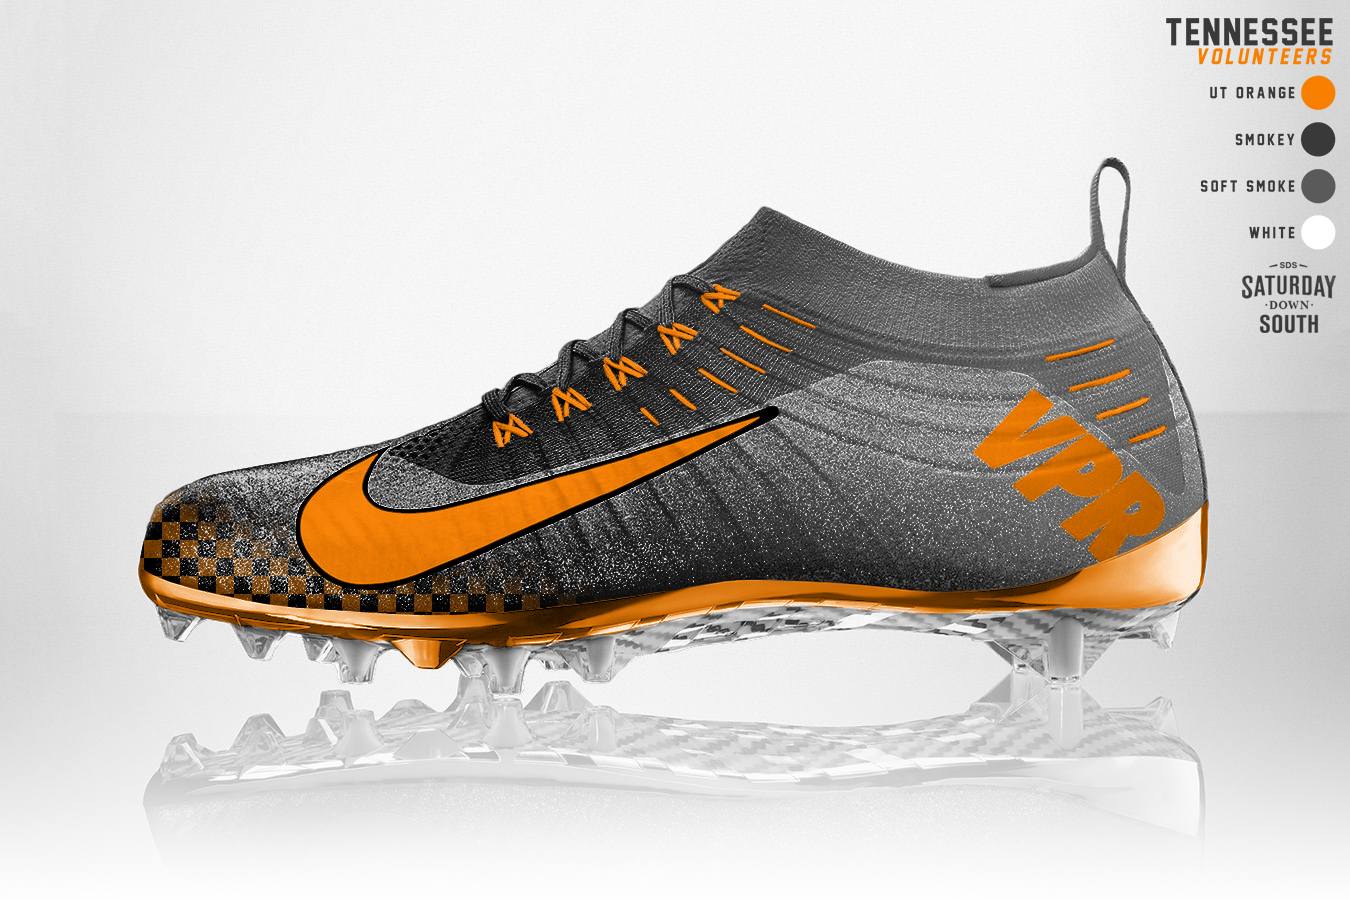 Tennessee Volunteers Nike Shoes